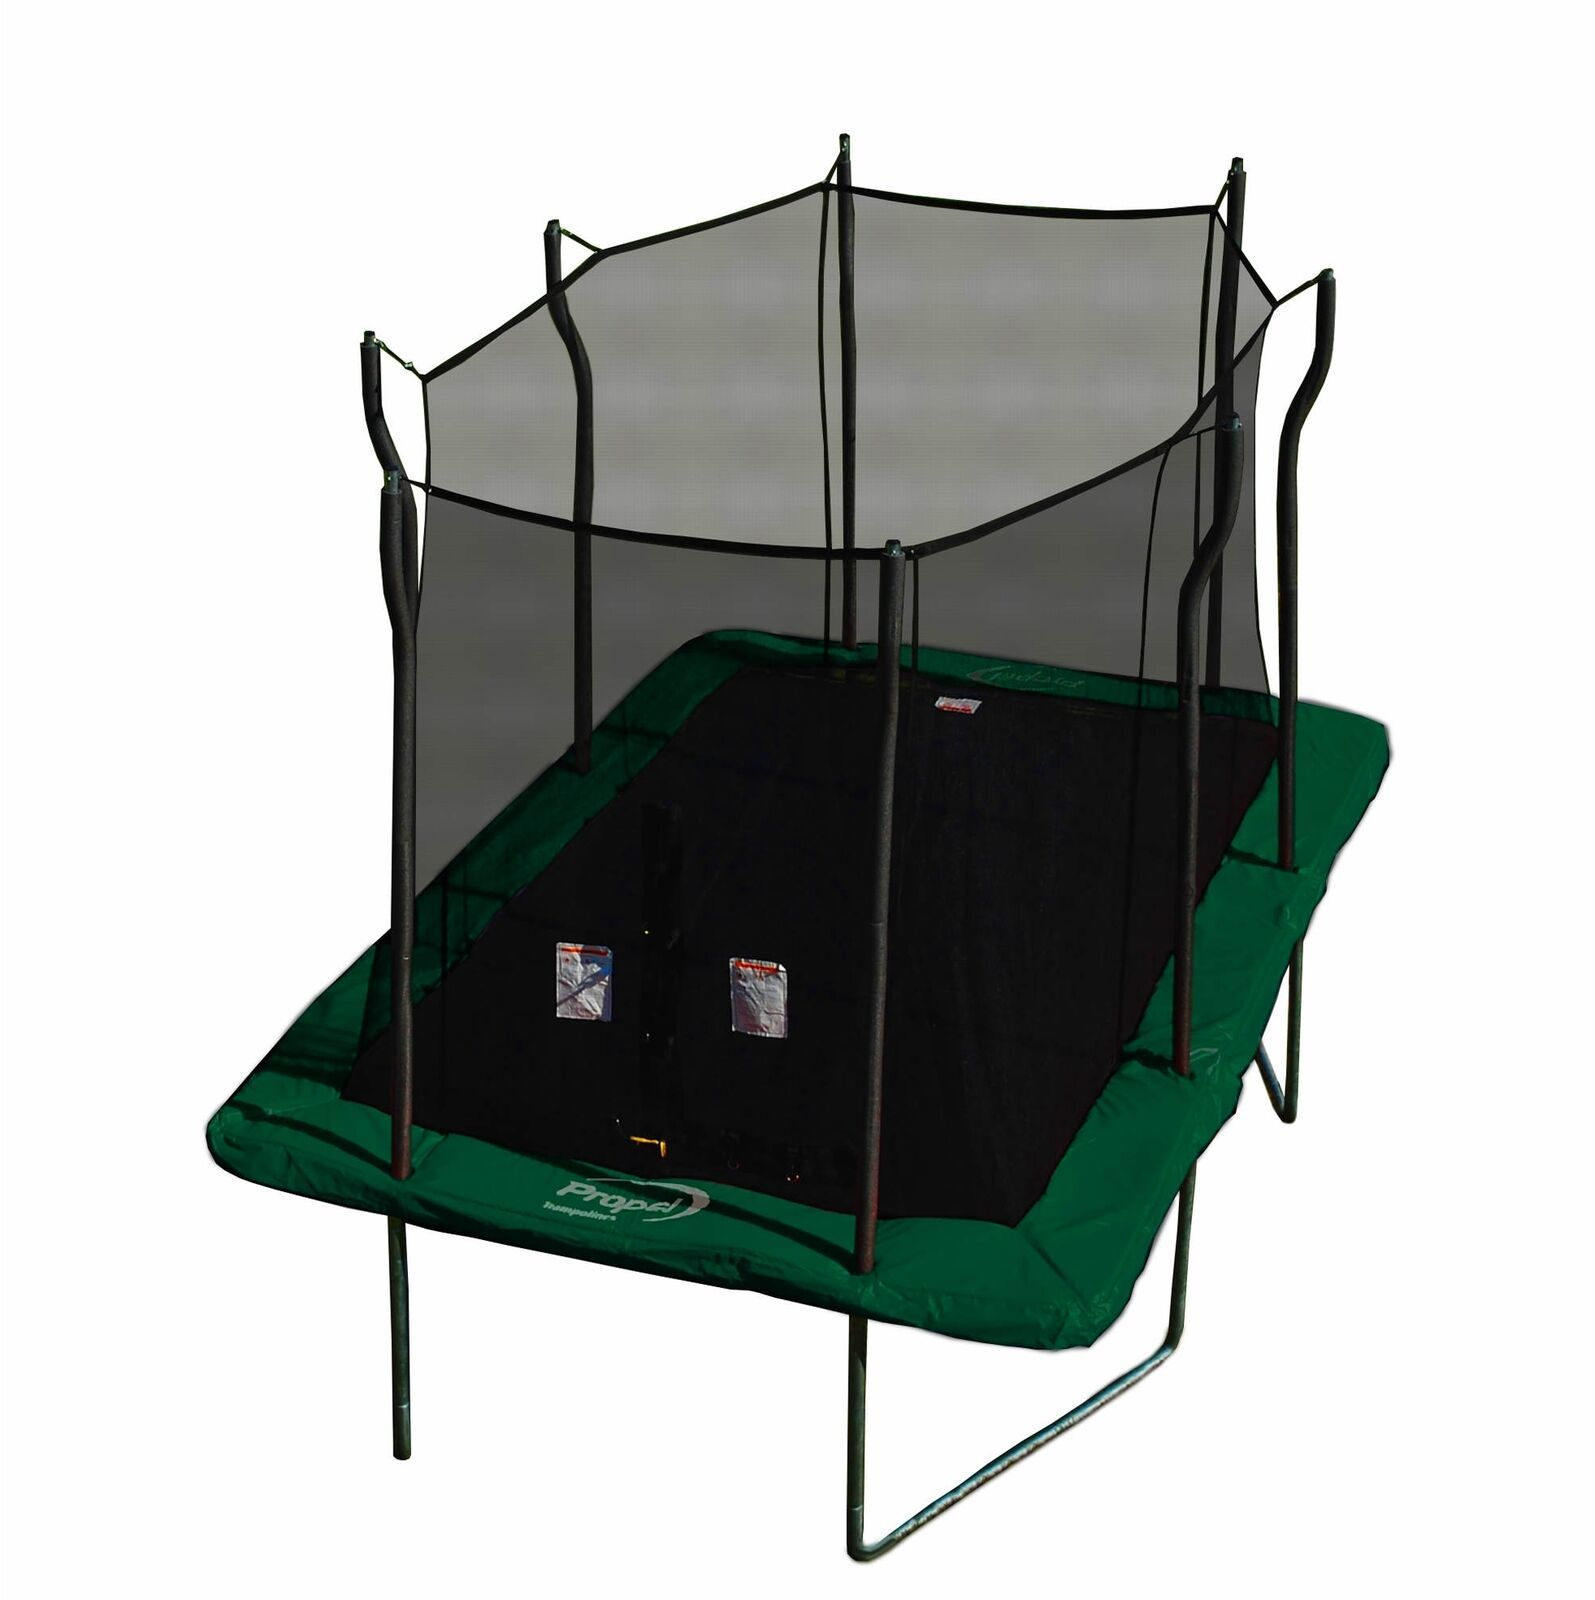 rectangular propel trampoline and surrounding net